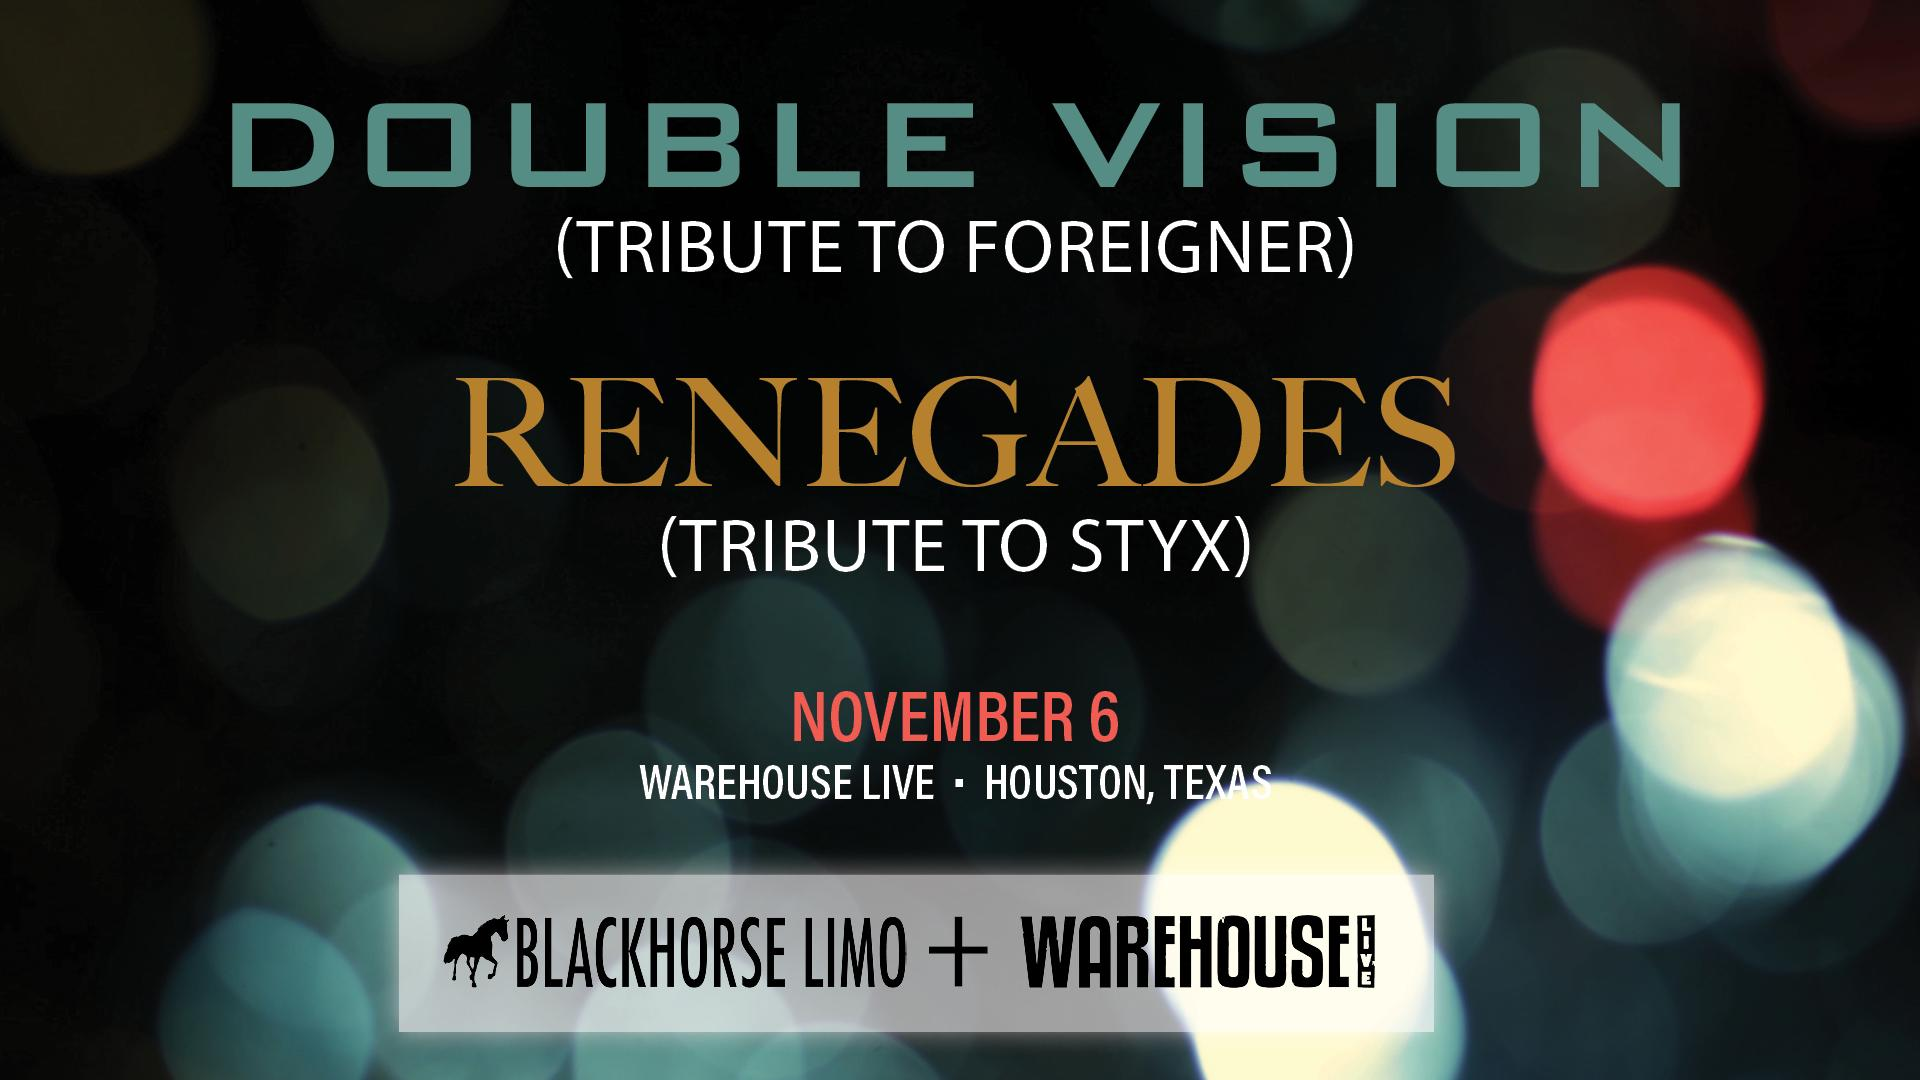 DOUBLE VISION (TRIBUTE TO FOREIGNER), RENEGADES (STYX TRIBUTE)